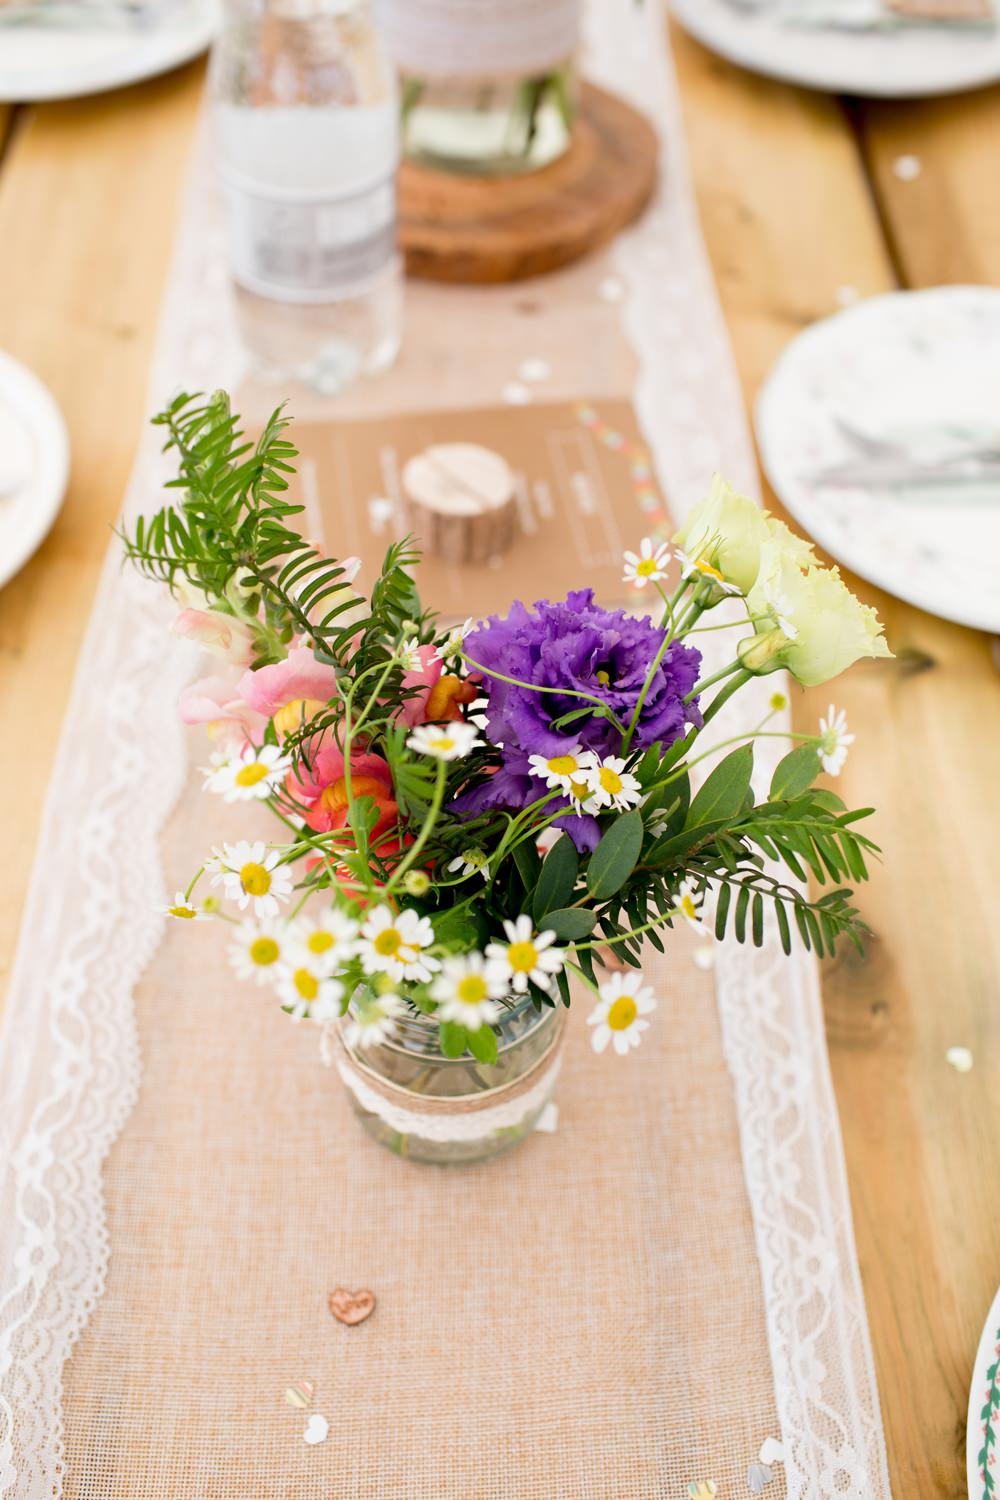 Wildflower Florals Burlap Hessian Lace Runner Jam Jar Table Meon Bye Farm Wedding Jessica Hayman Photography